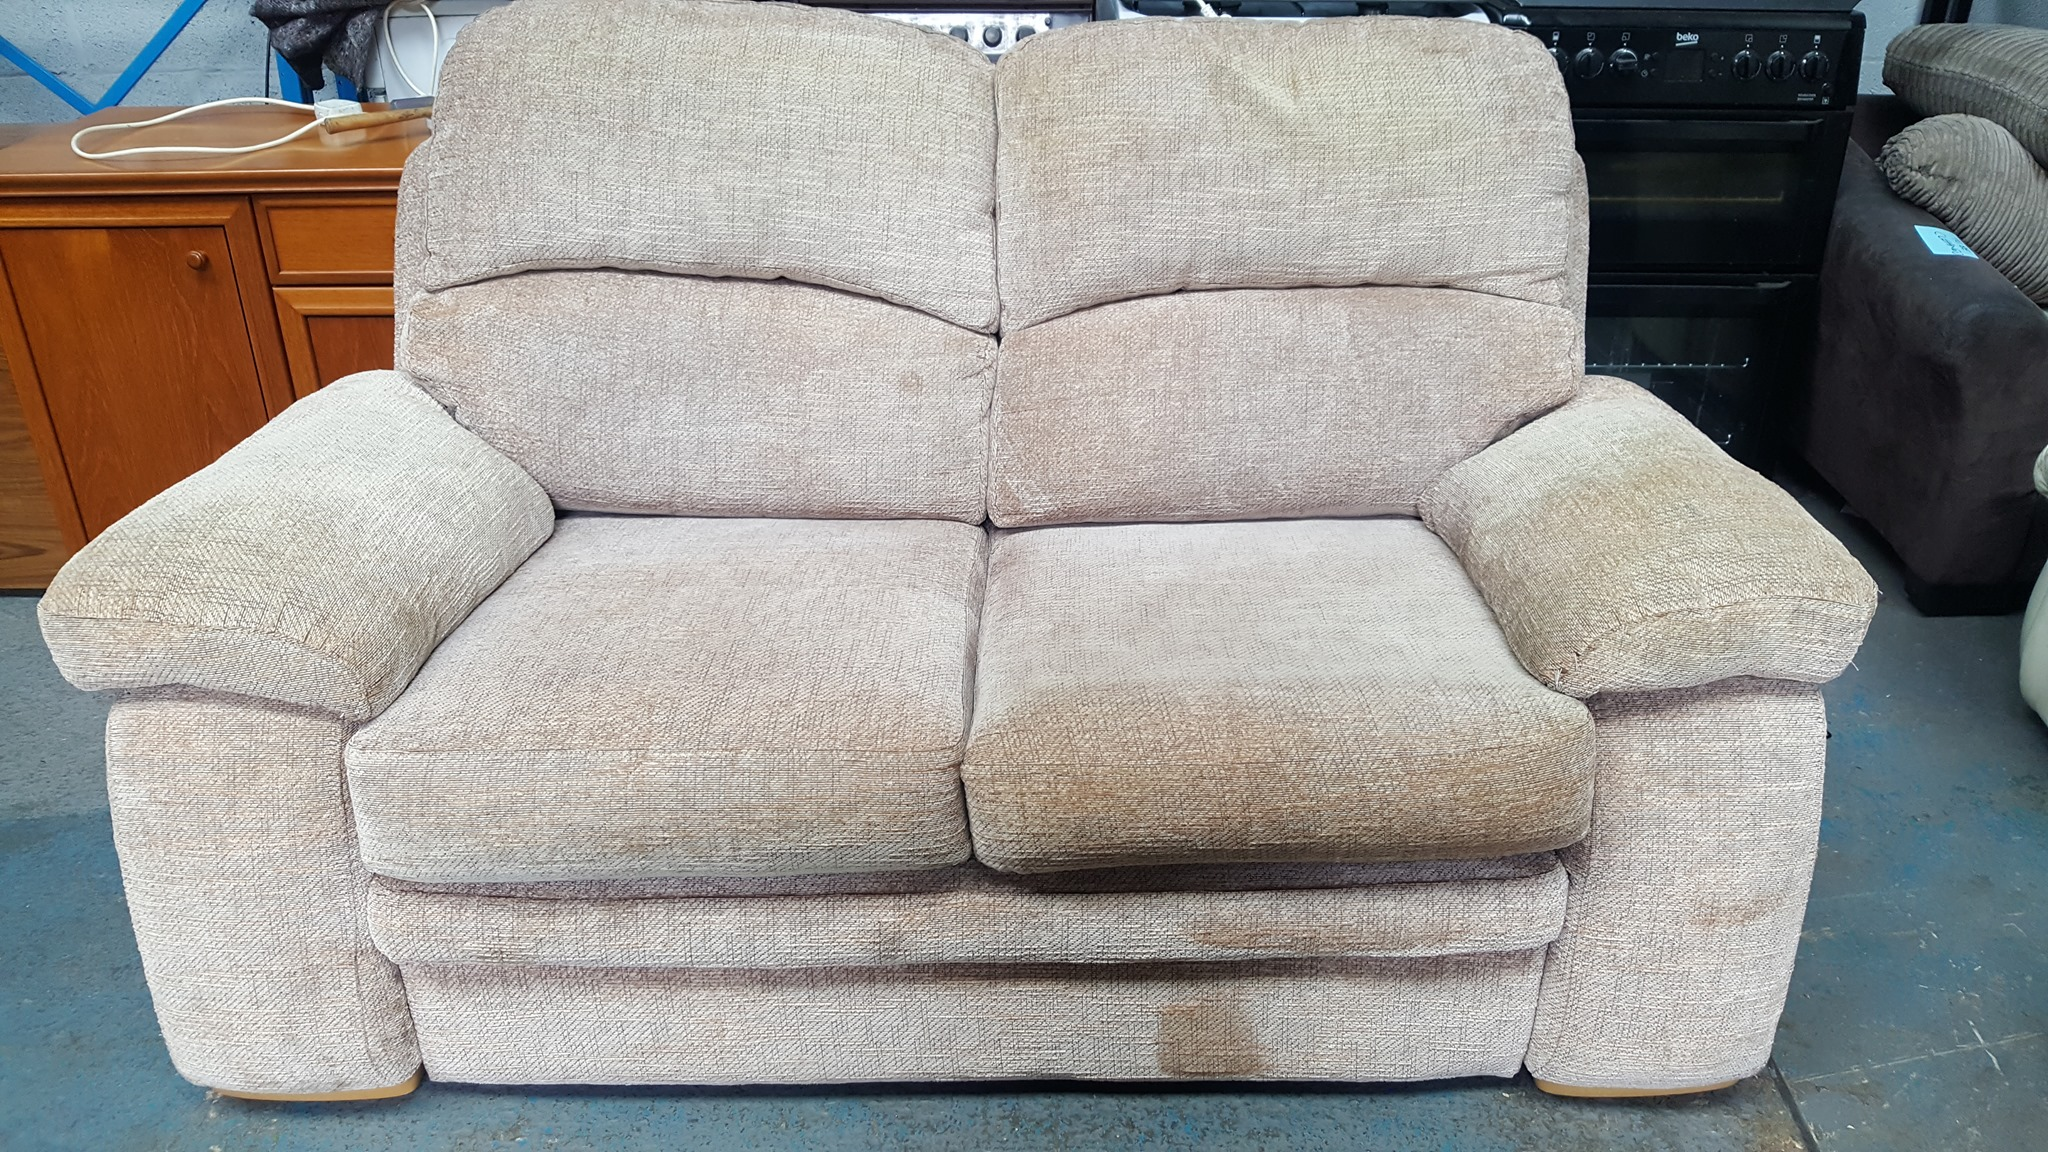 2 SEATER OATMEAL FABRIC SOFA £95